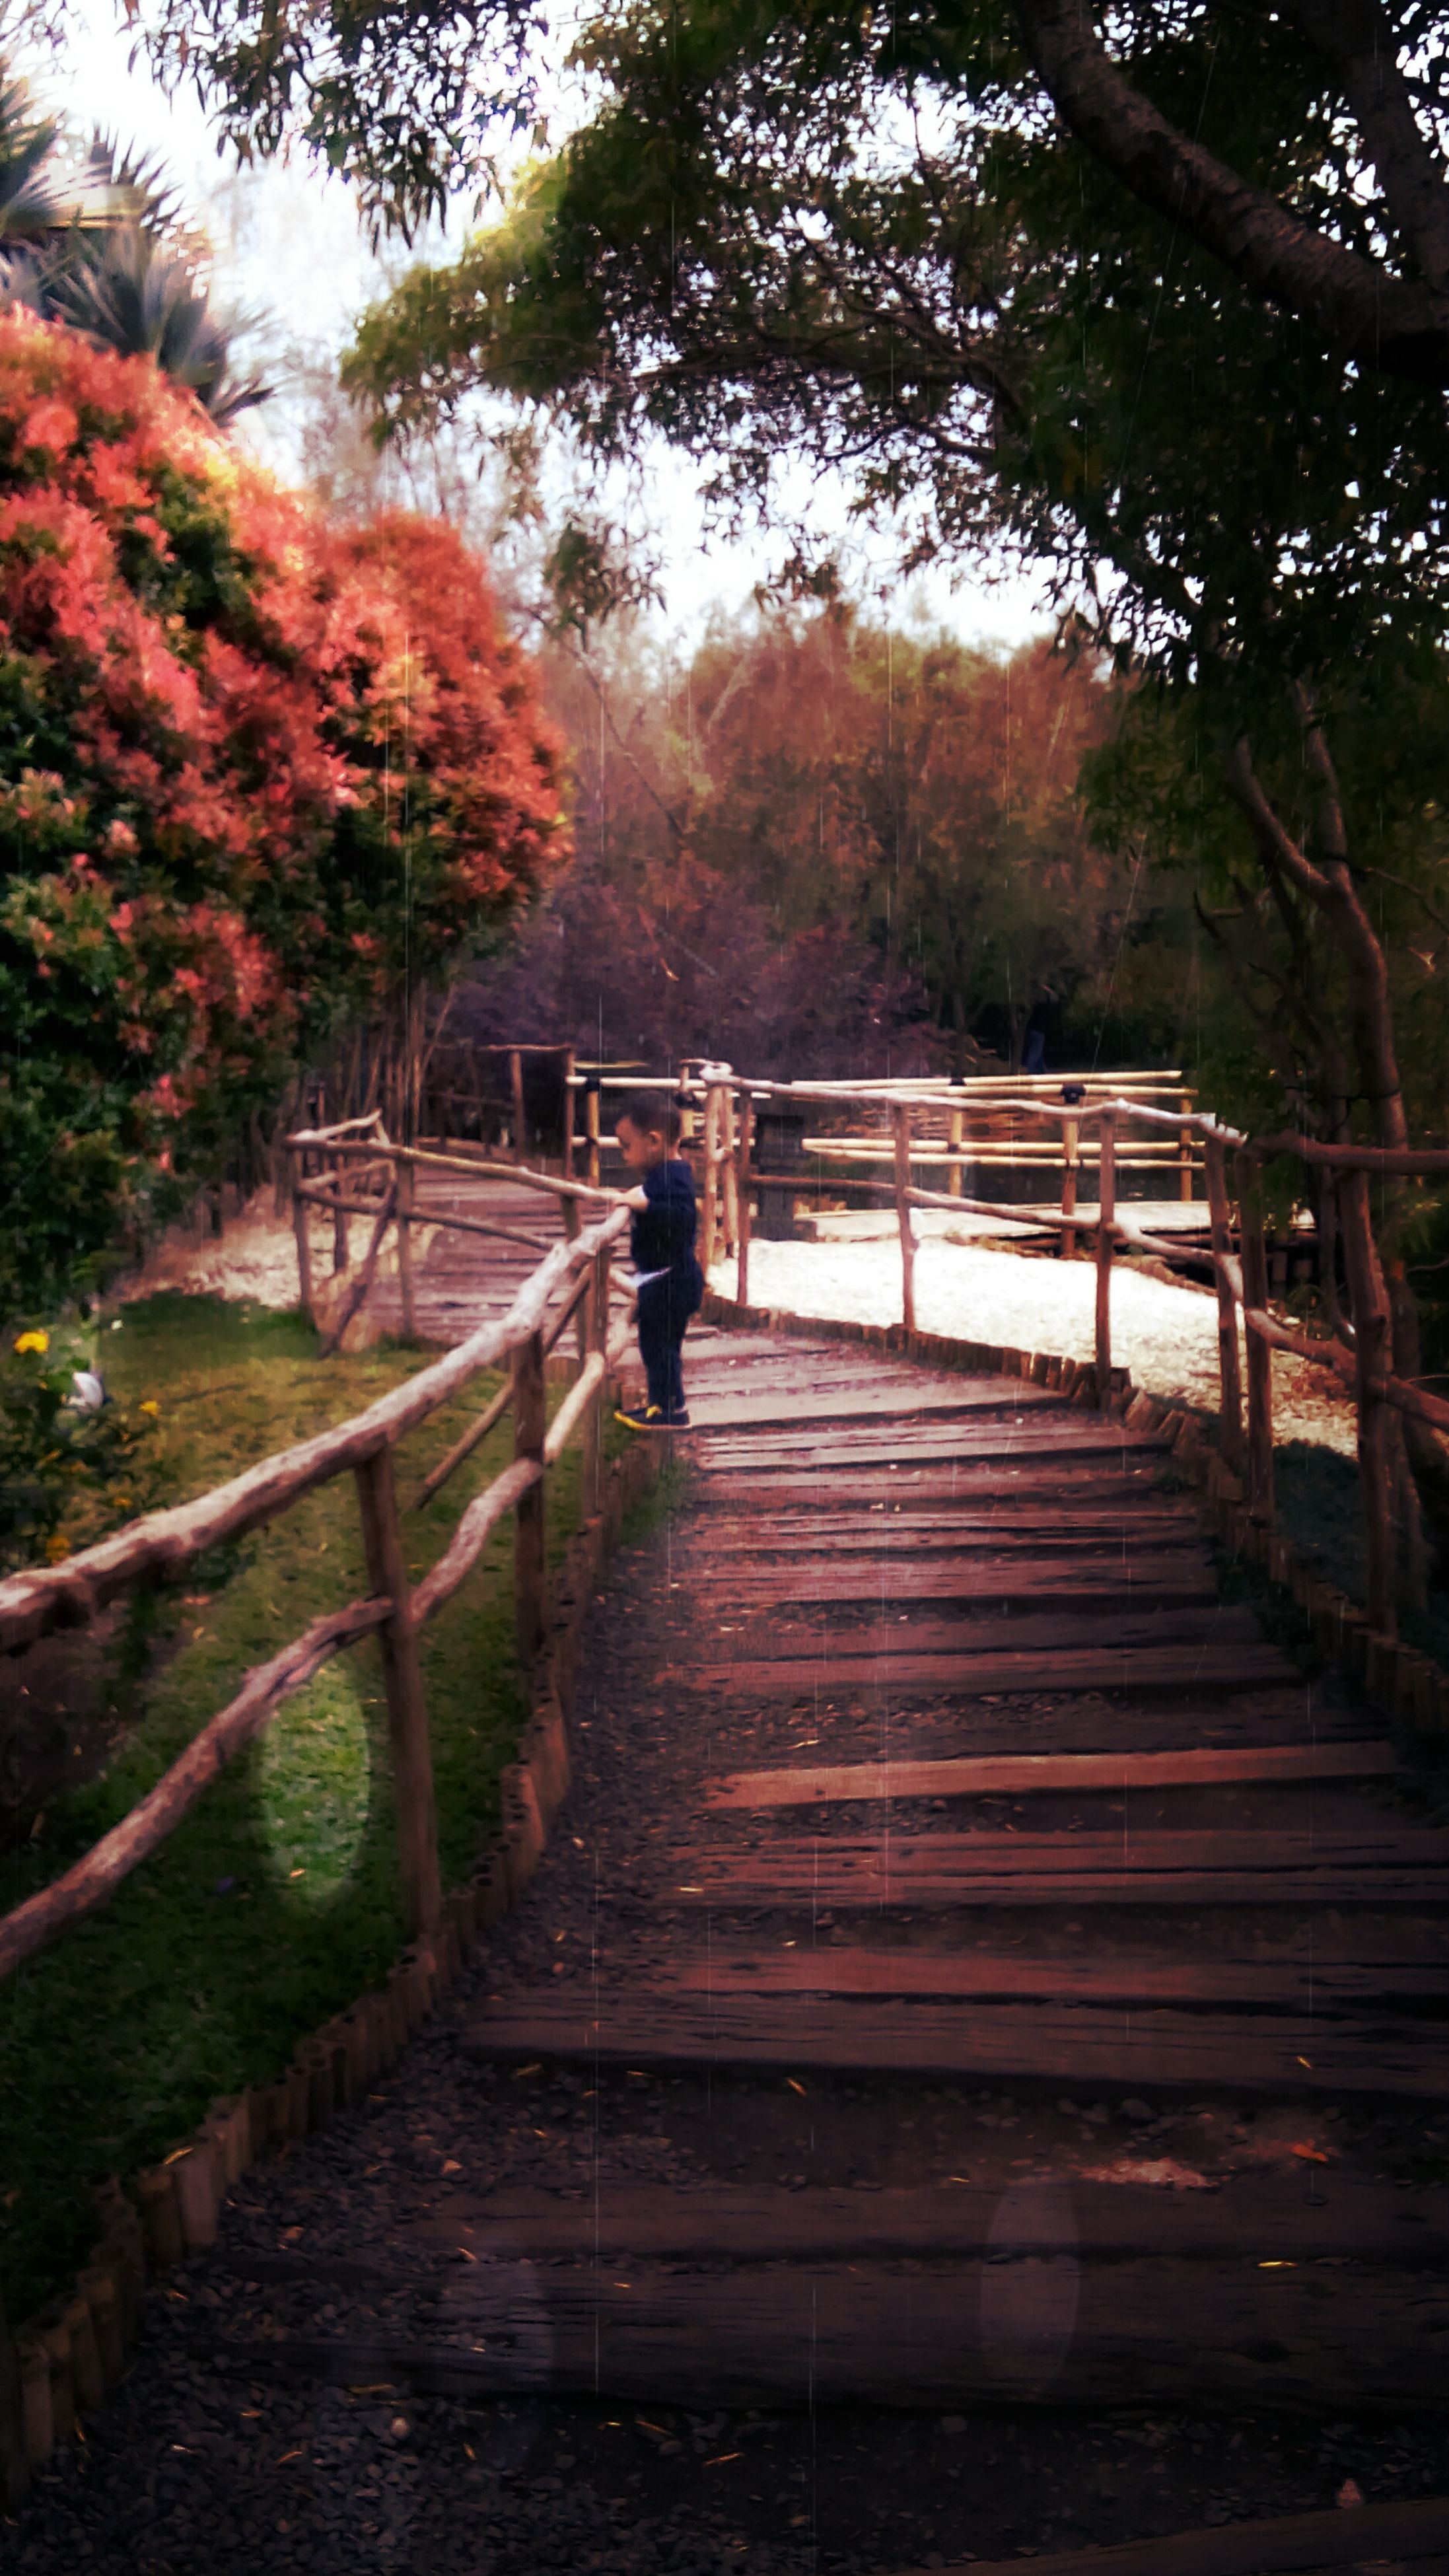 tree, nature, beauty in nature, railing, steps, outdoors, the way forward, tranquility, staircase, scenics, day, footbridge, no people, steps and staircases, sky, cultures